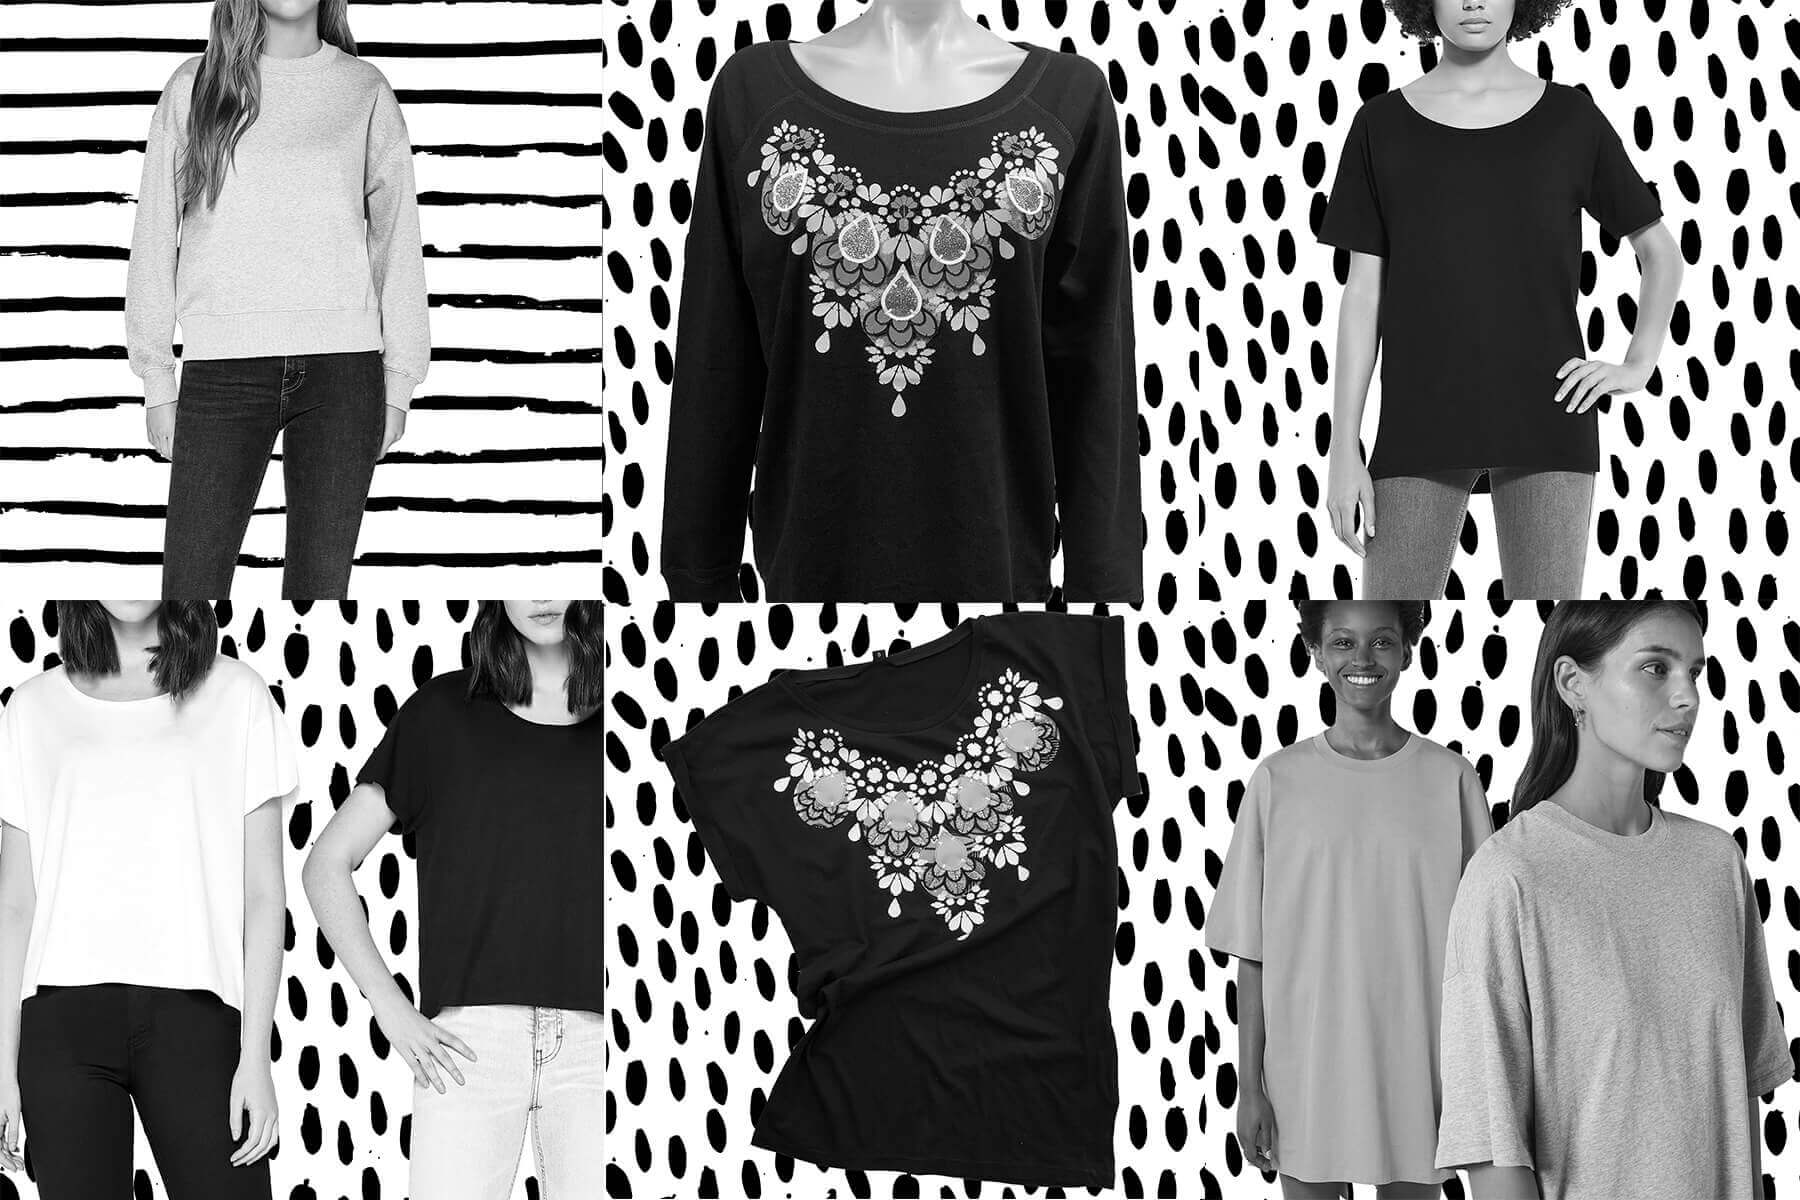 A grid of six images, all black and white photographs of garment options for the embellished sweatshirts, T-shirts and T-dress